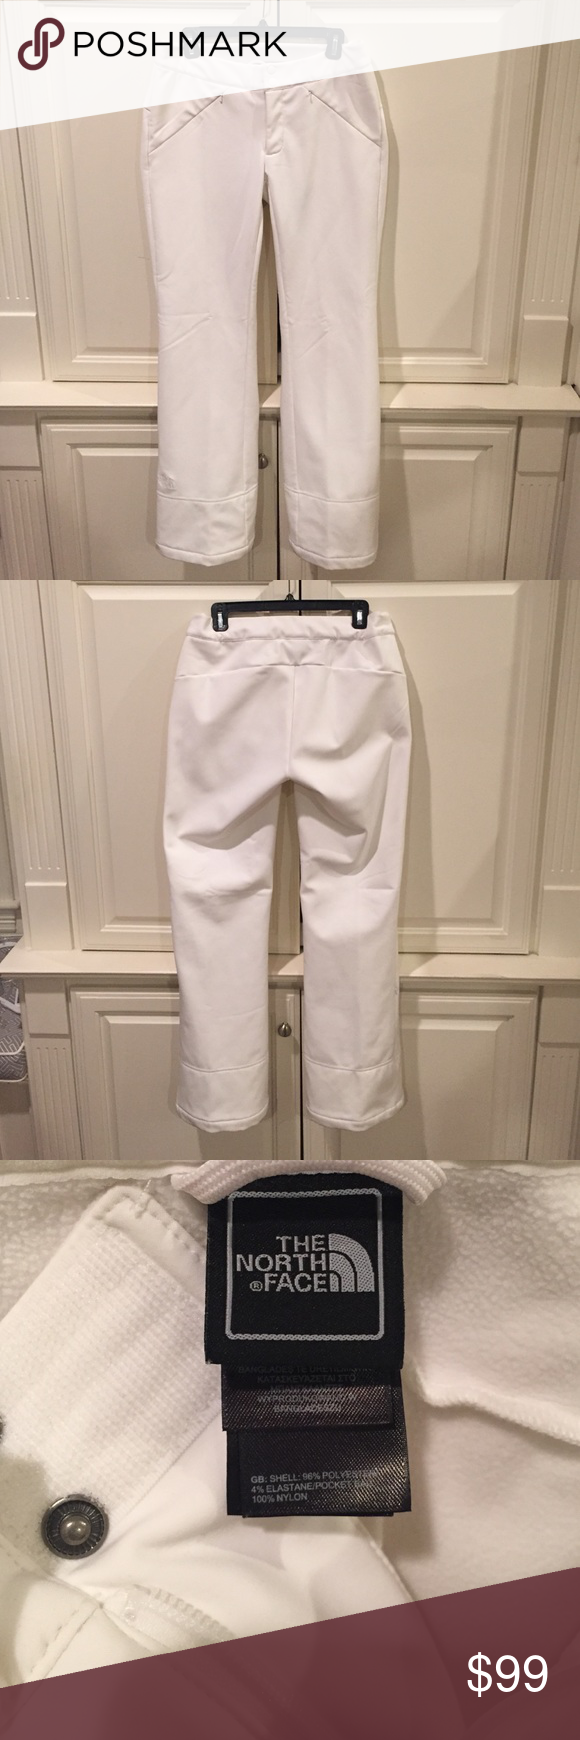 """The North Face - women's ski pants """"Apex STH"""" The North Face - women's ski pants.  Worn for only 1 day around base camp.  Excellent, like new condition.  Hidden, front zippered pockets.  Hidden, zippered pocket on lower left leg.  Adjustable, internal, Velcro waistband for custom fit.  Size Medium (M), as pictured. The North Face Pants"""